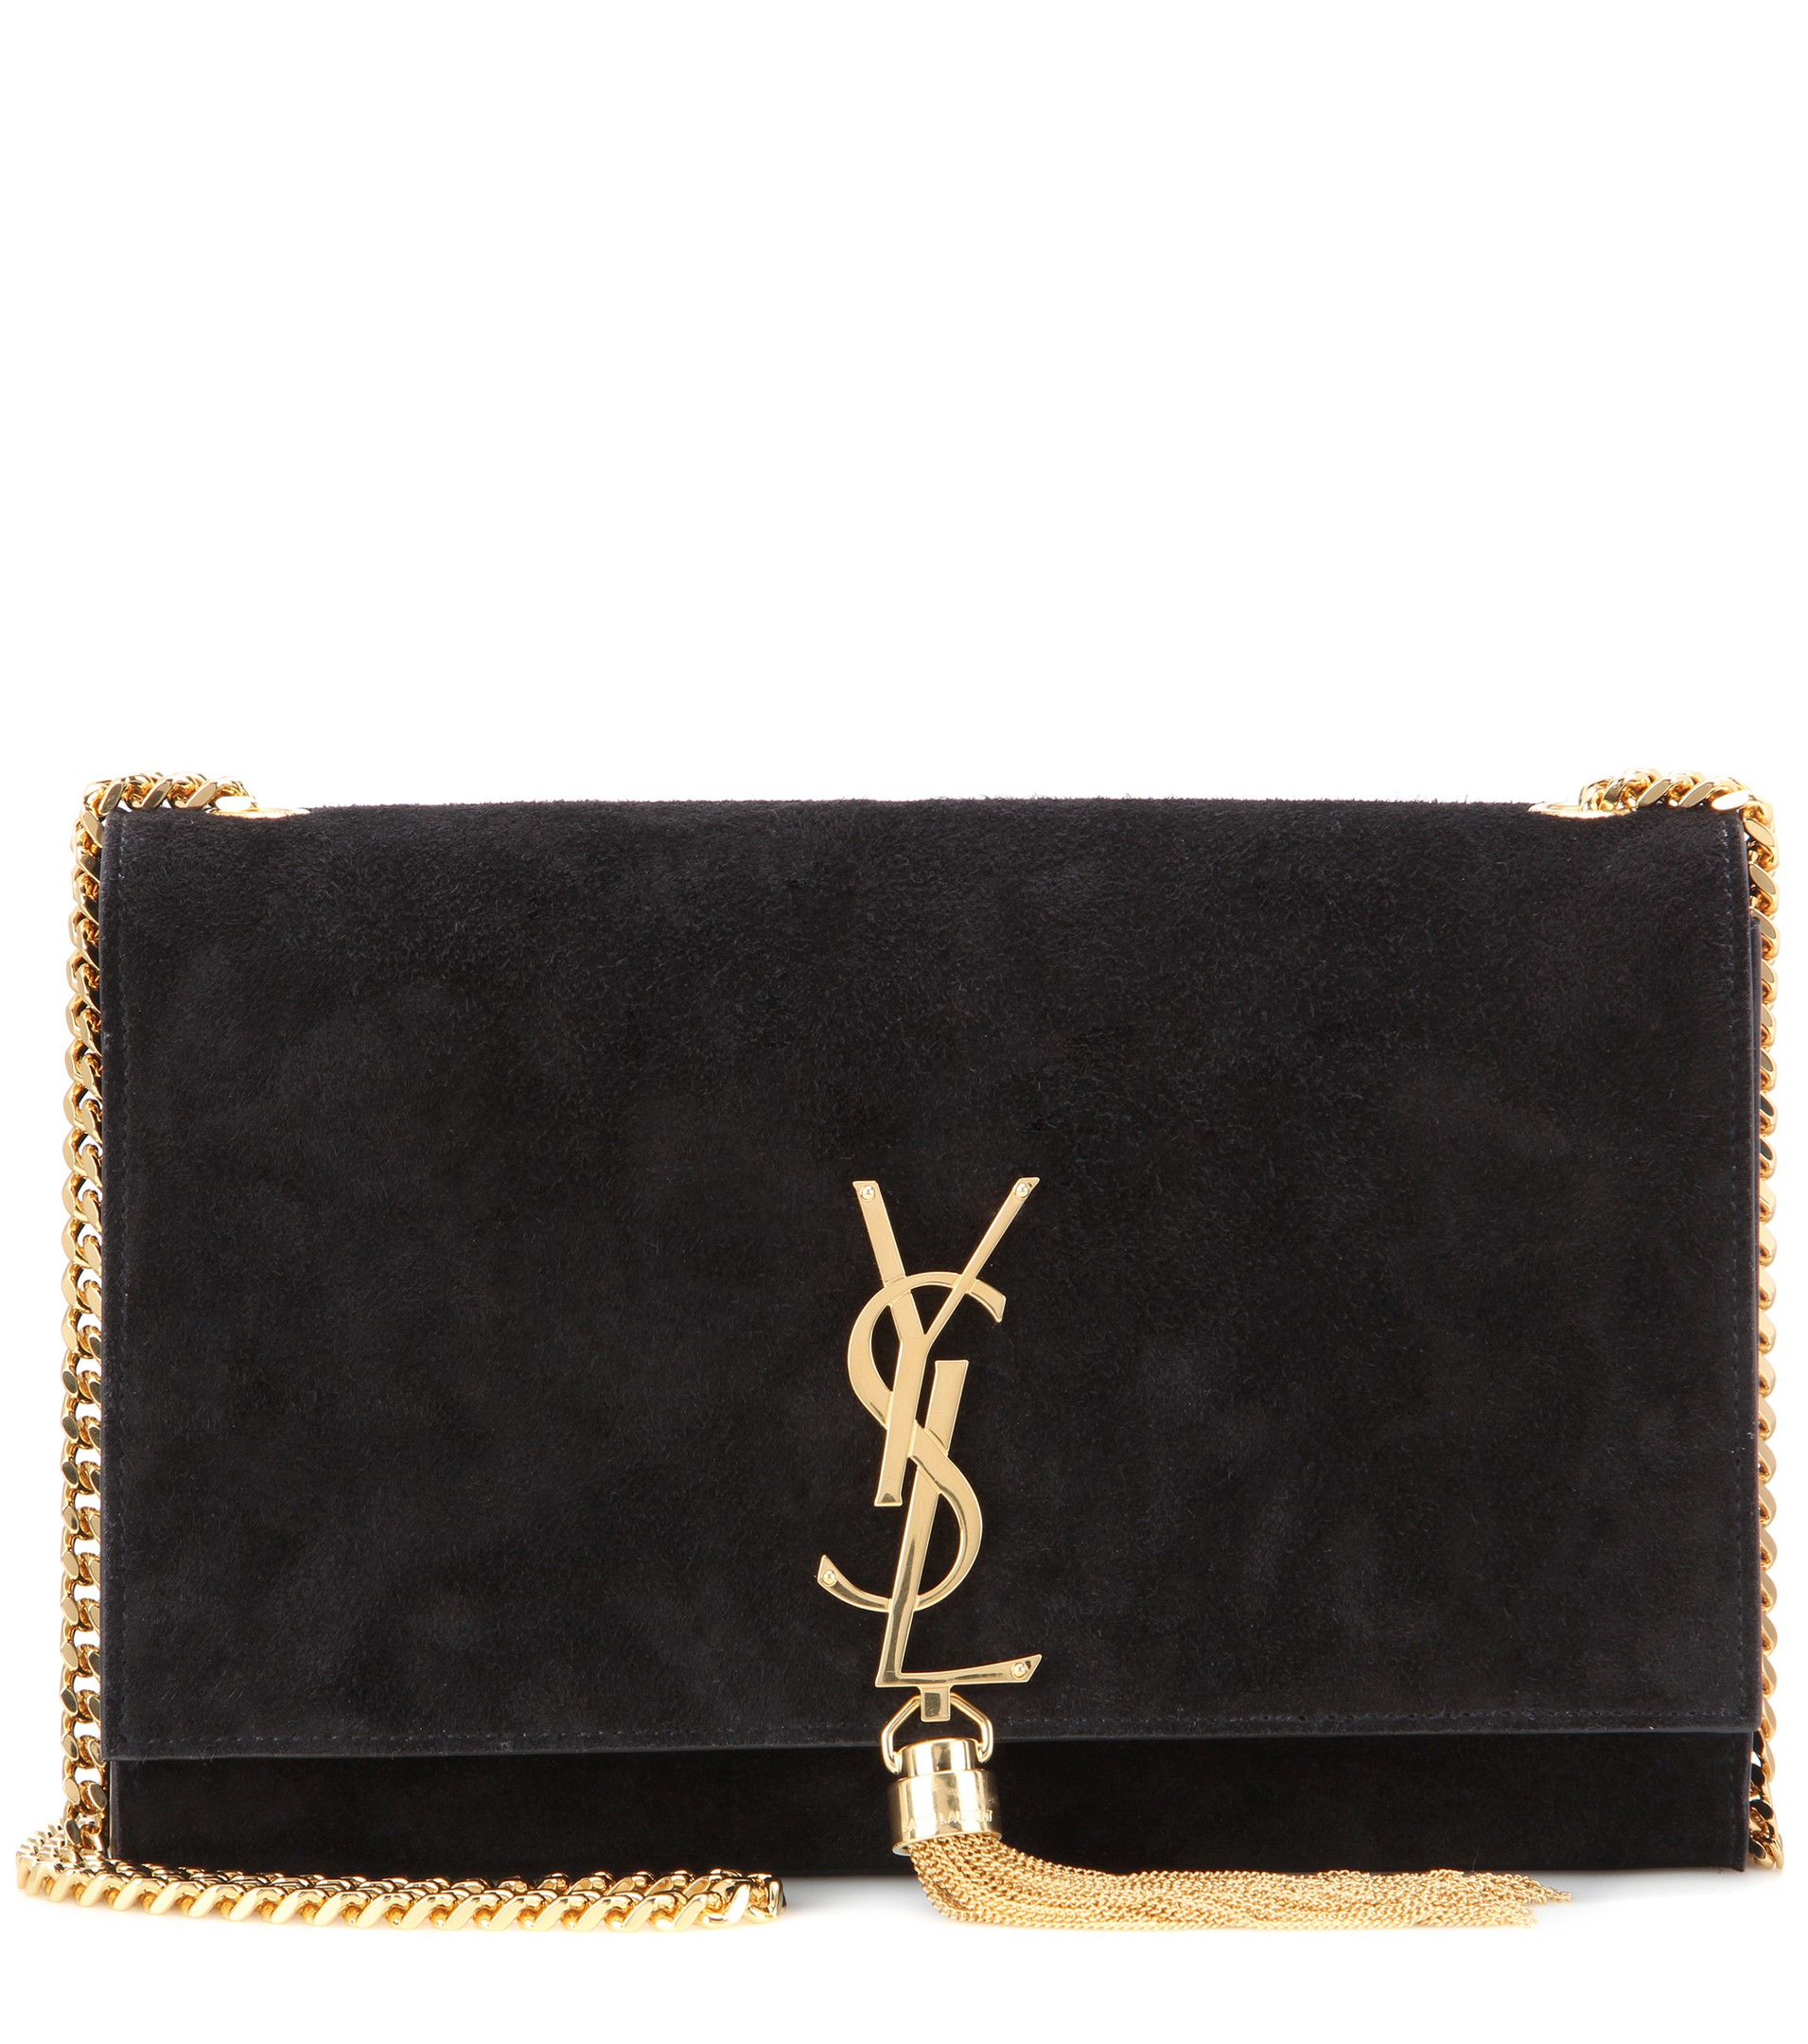 saint laurent classic monogram suede shoulder bag in black lyst. Black Bedroom Furniture Sets. Home Design Ideas